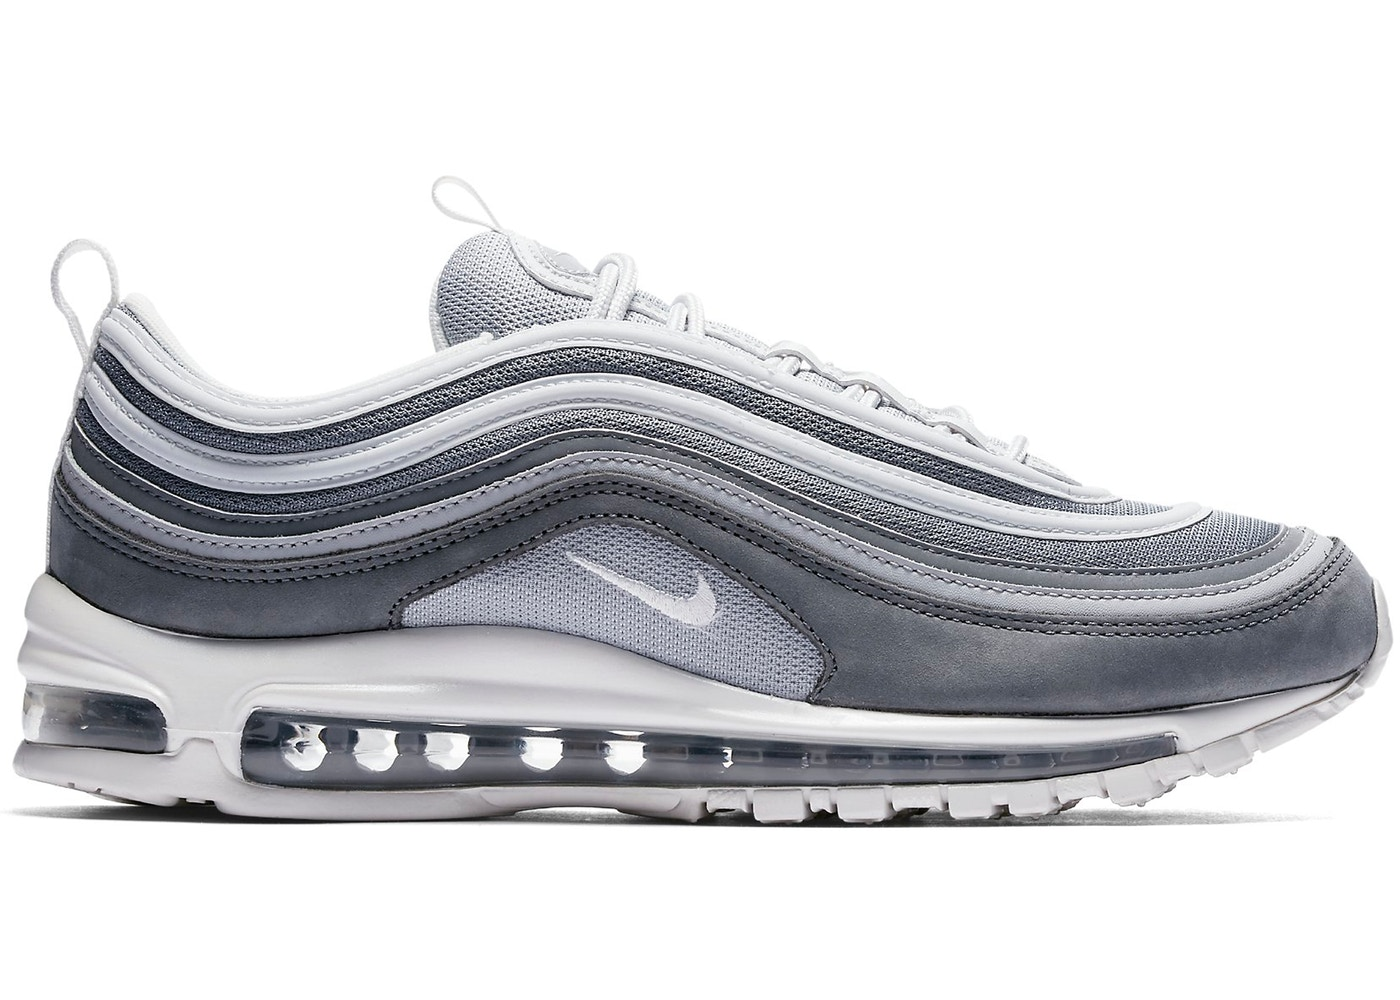 premium selection 2a5a7 ade52 Air Max 97 Wolf Grey